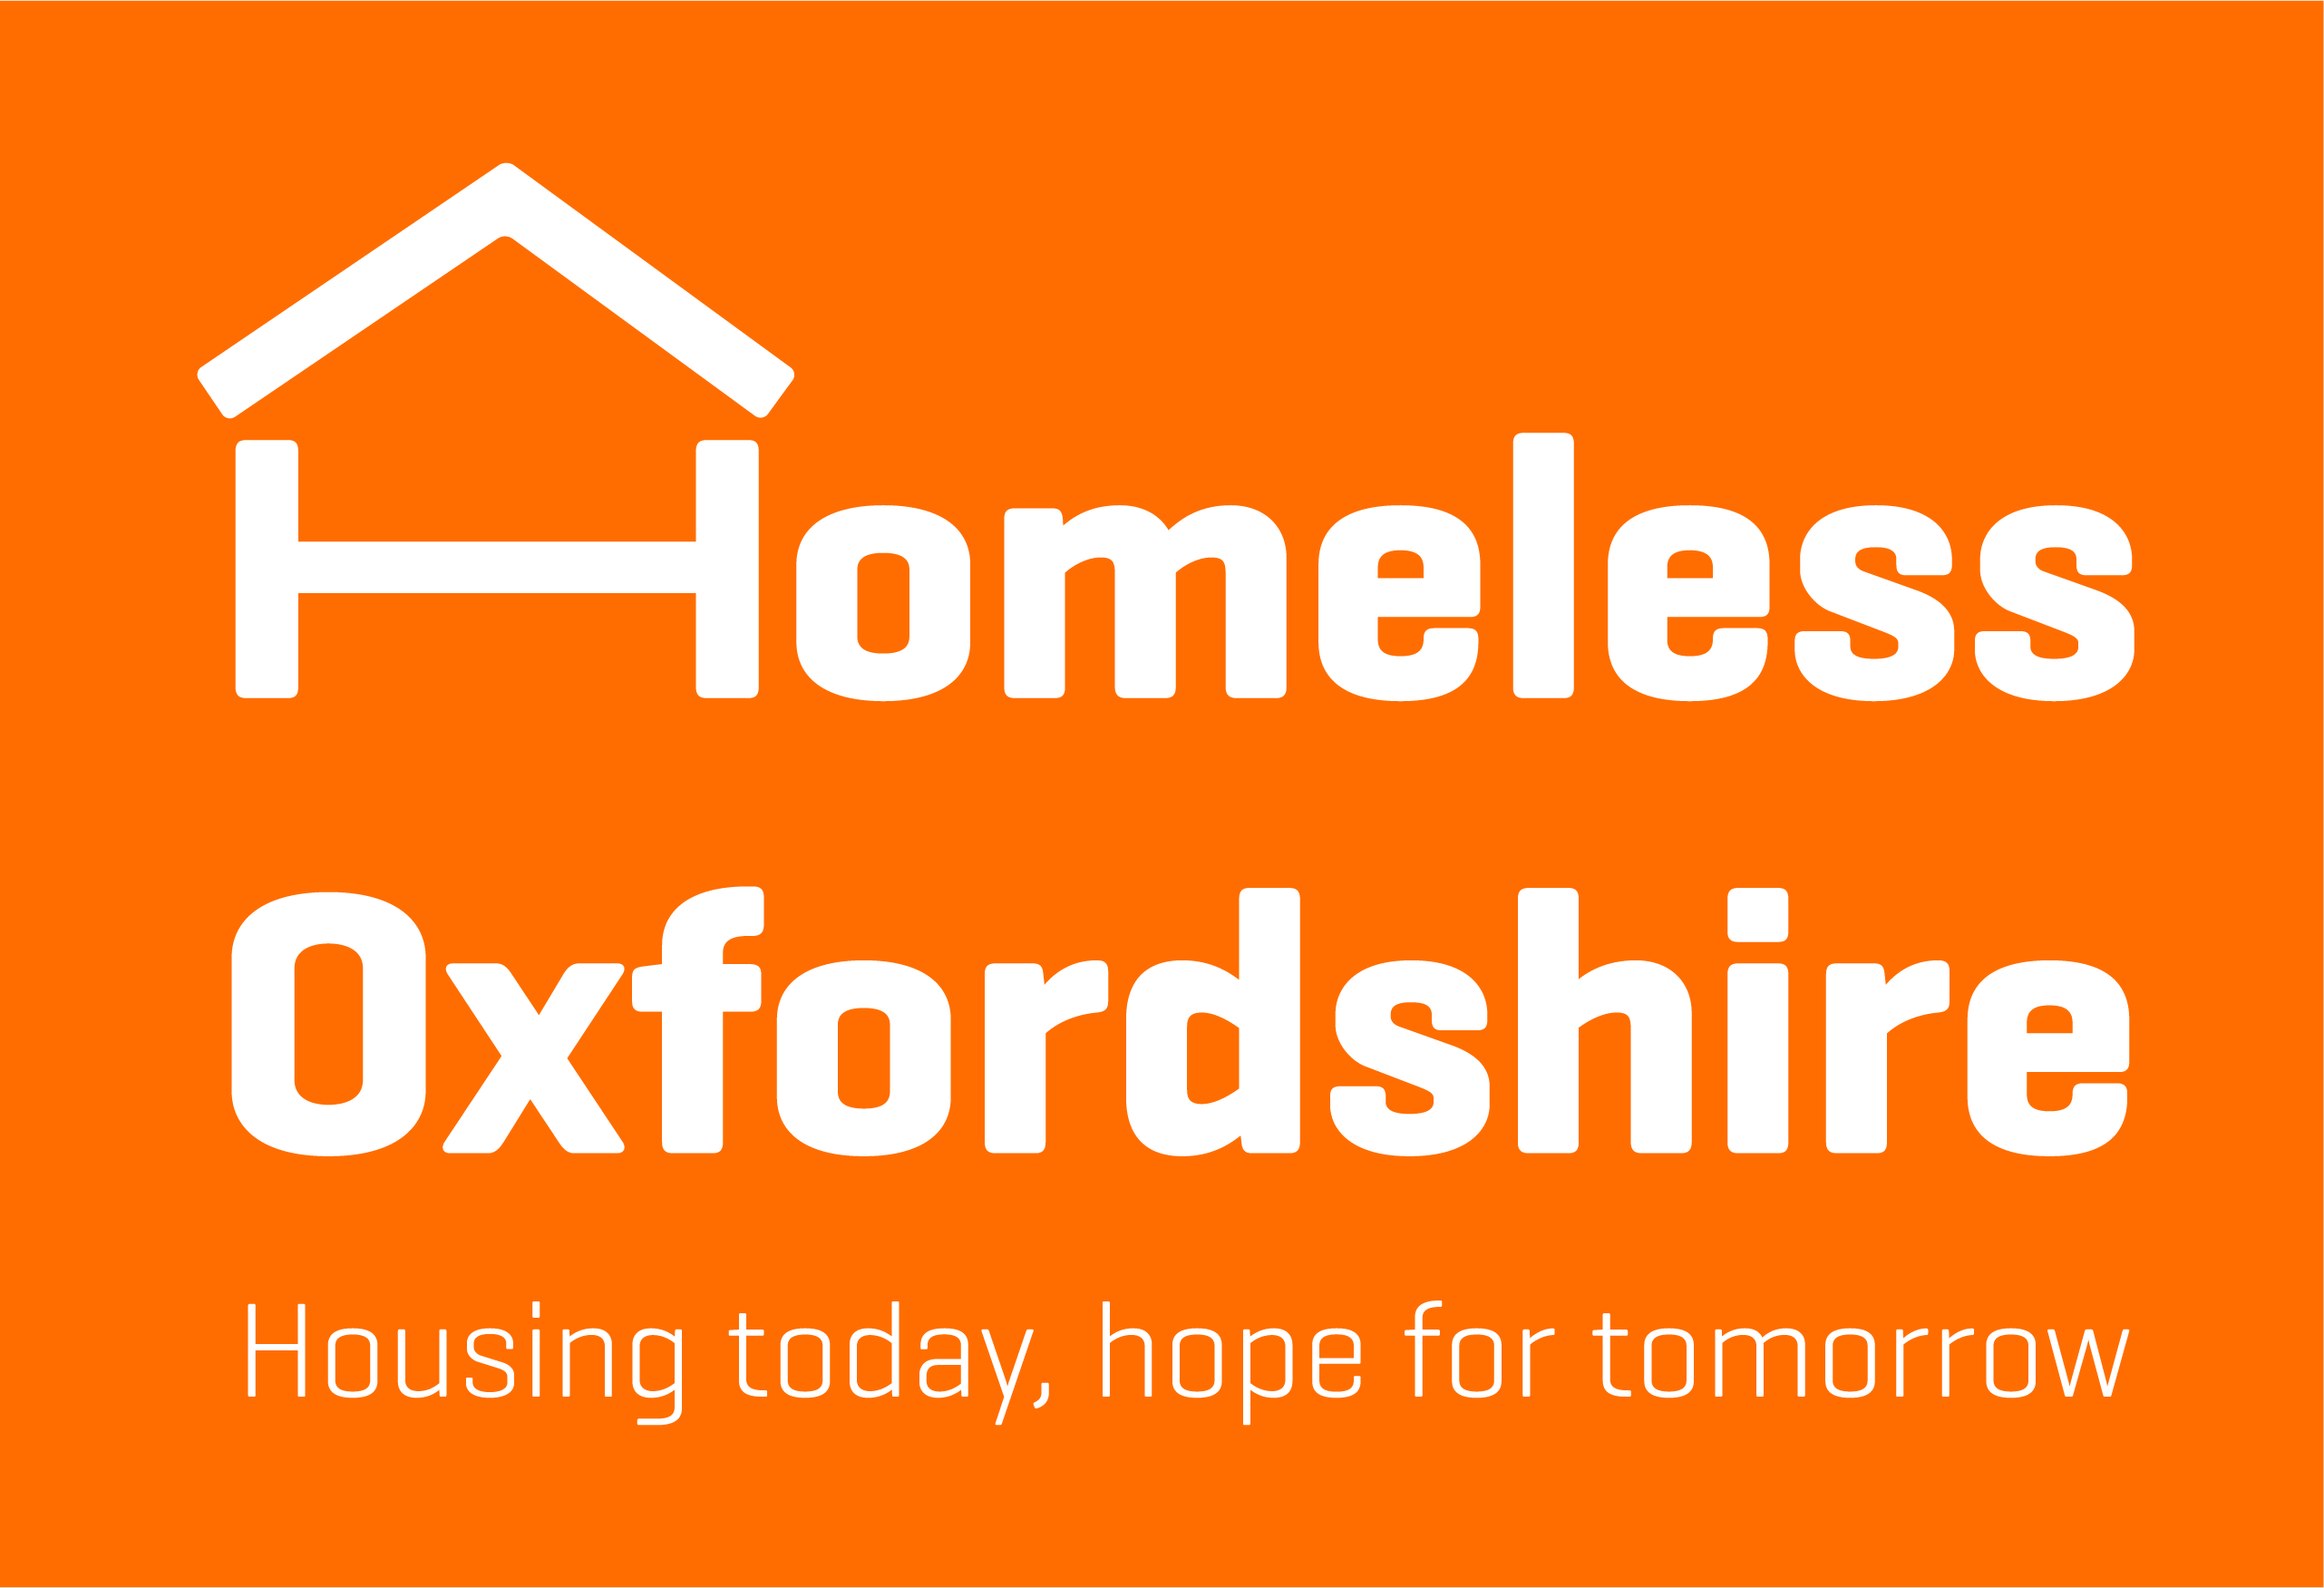 /Homeless%20Oxfordshire%20logo%20-%20high%20resolution%20PNG.png